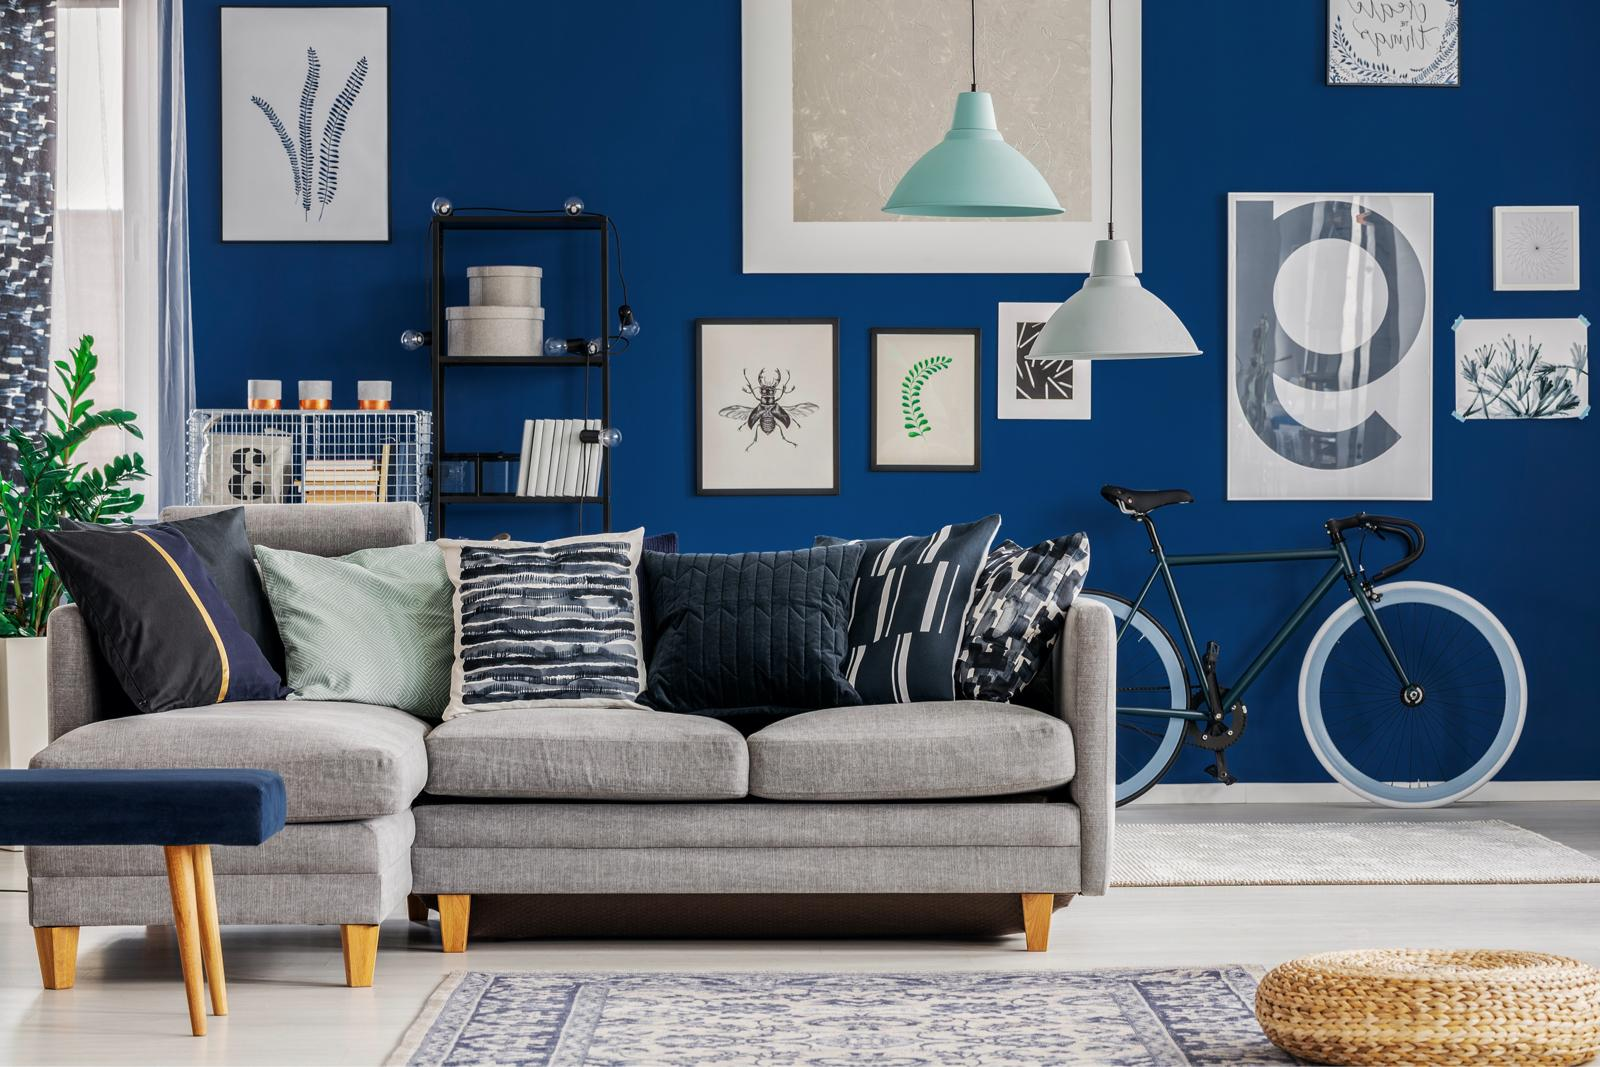 Maximalism Style And Why We Love It 7, Paneling Factory Of Virginia